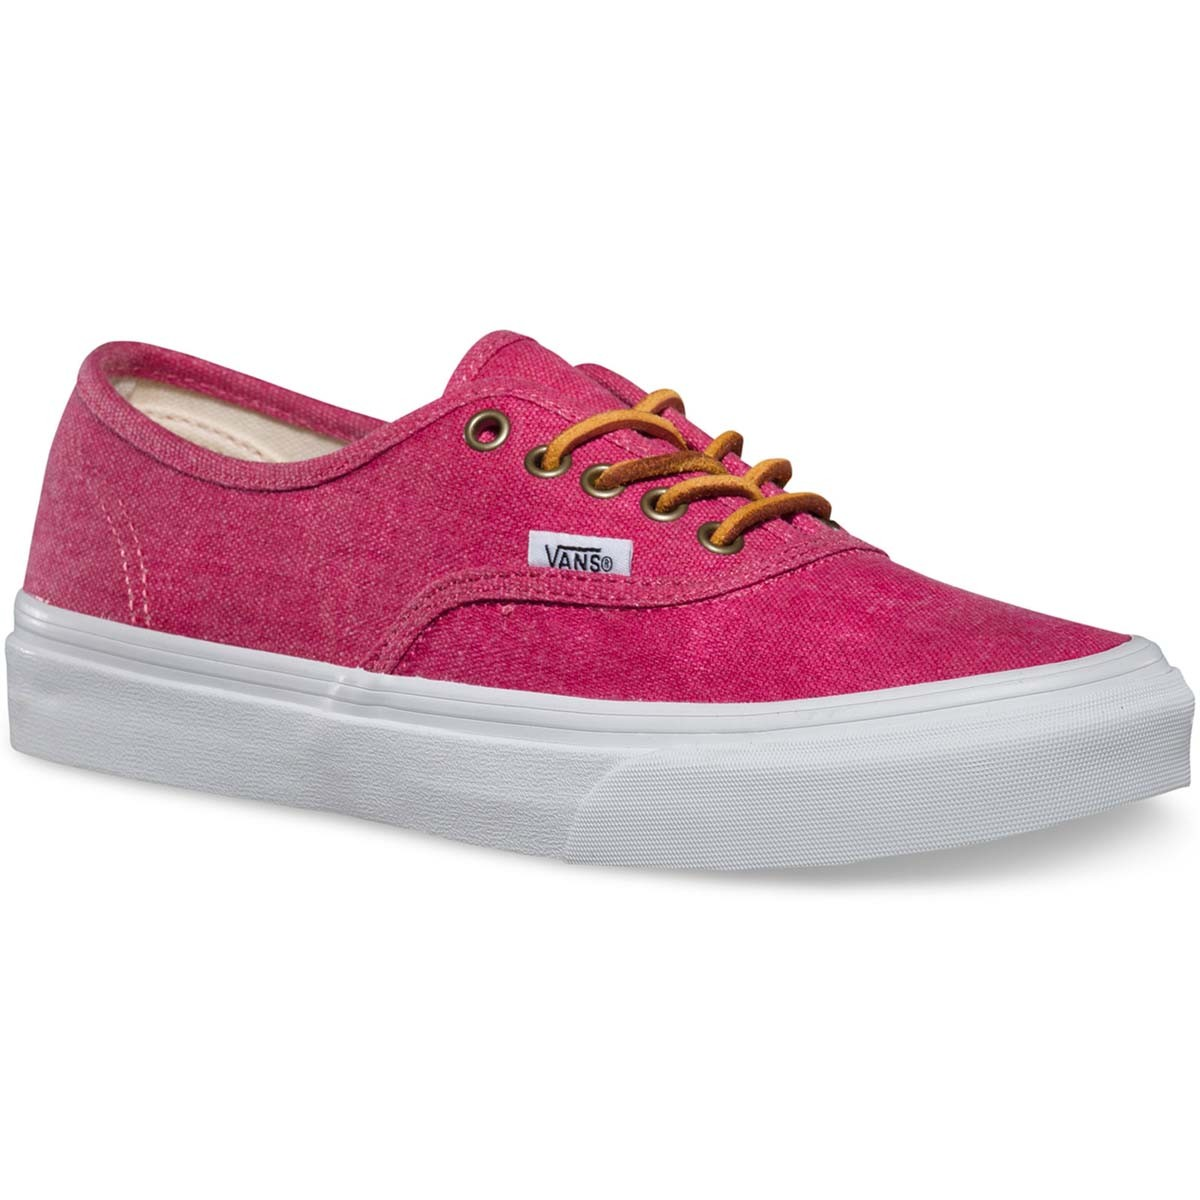 2224dd2aca Vans Washed Authentic Slim Womens Shoes - Persian Red   True White